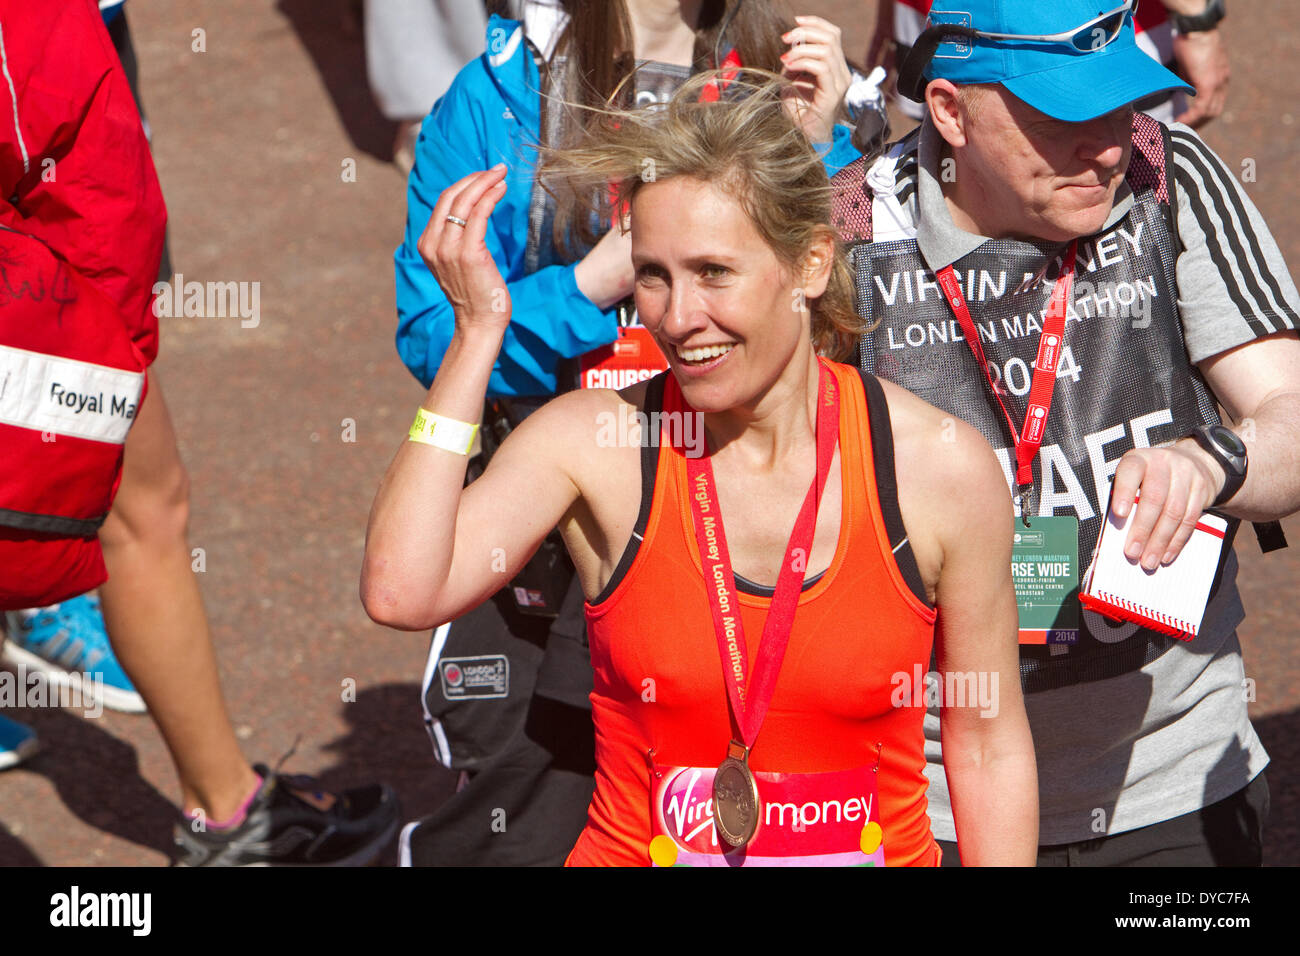 London,UK,13th April 2014,Sophie Raworth after finishing the London Marathon 201 Credit: Keith Larby/Alamy Live News - Stock Image